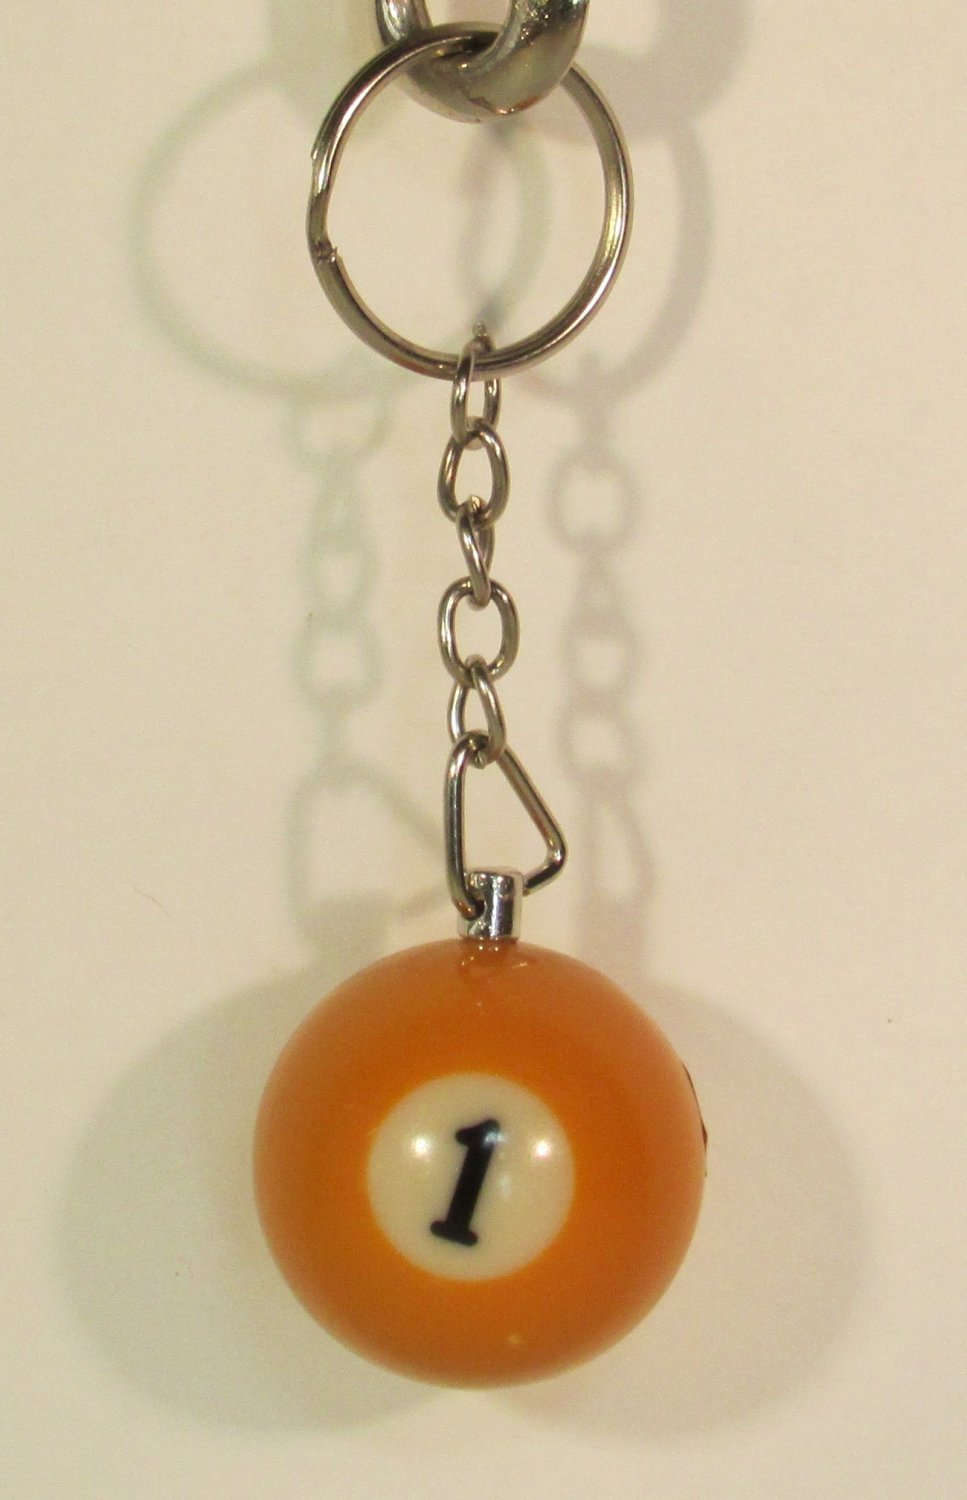 1.25 Inch Number 1 One Mini POOL BALL Billiard Key Chain Ring Keychain NEW